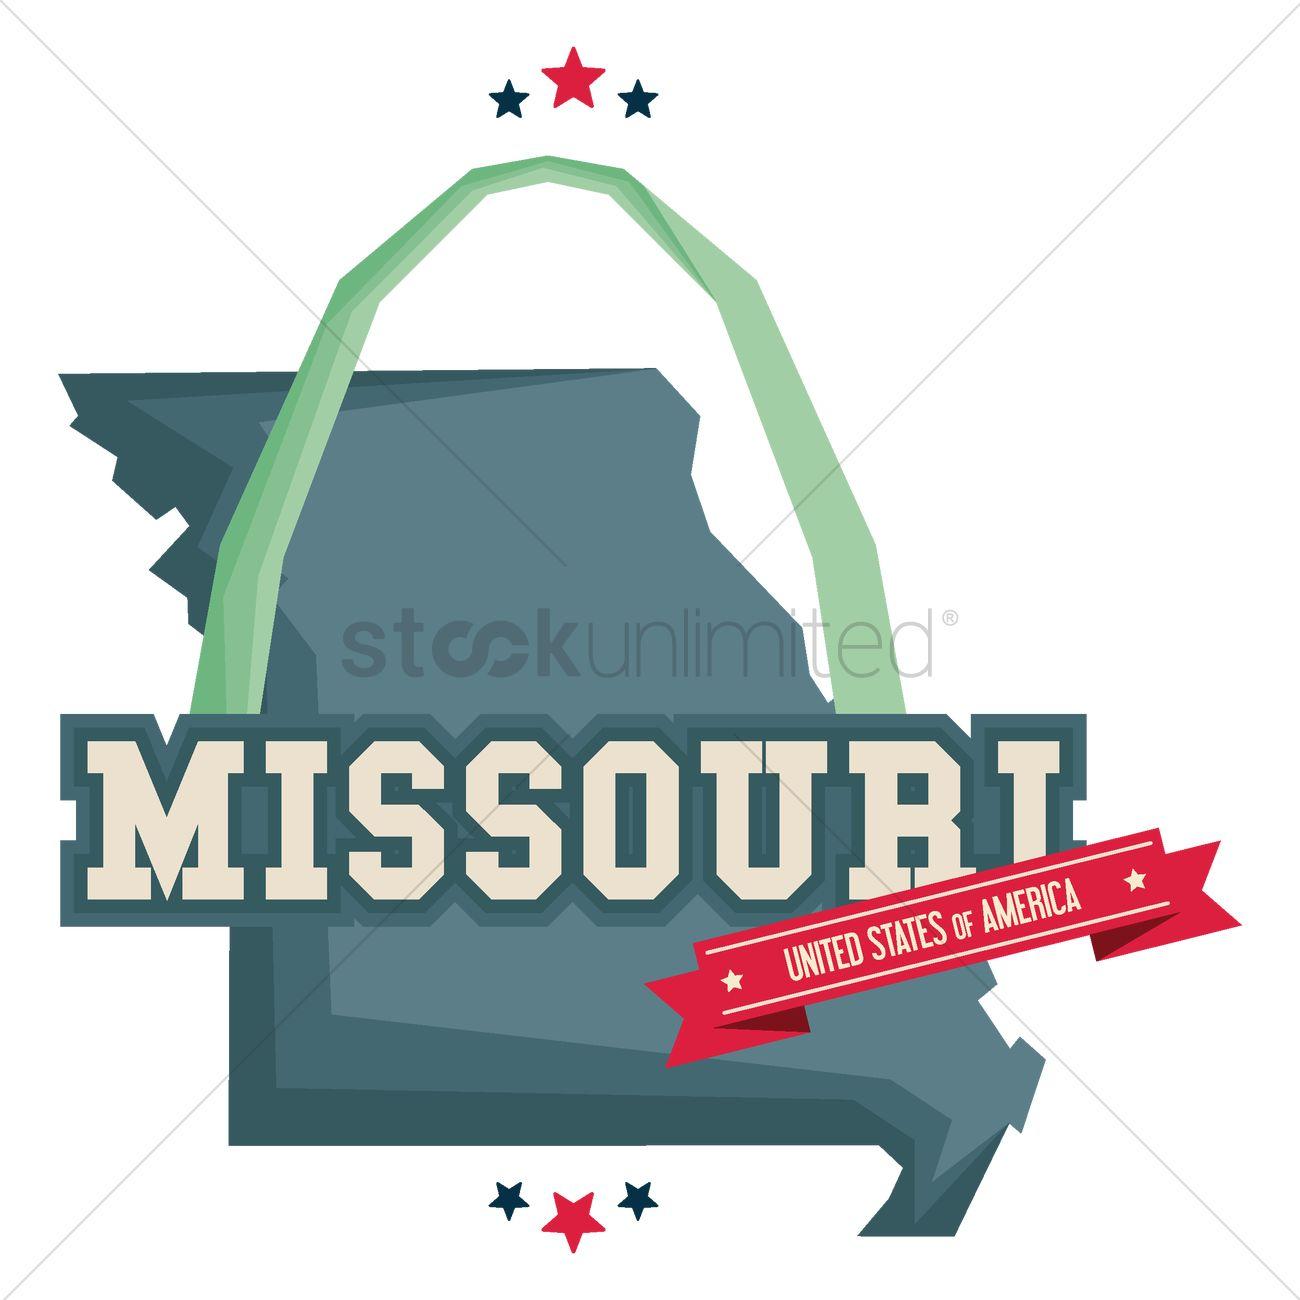 Missouri map with st louis gateway arch Vector Image 1541147